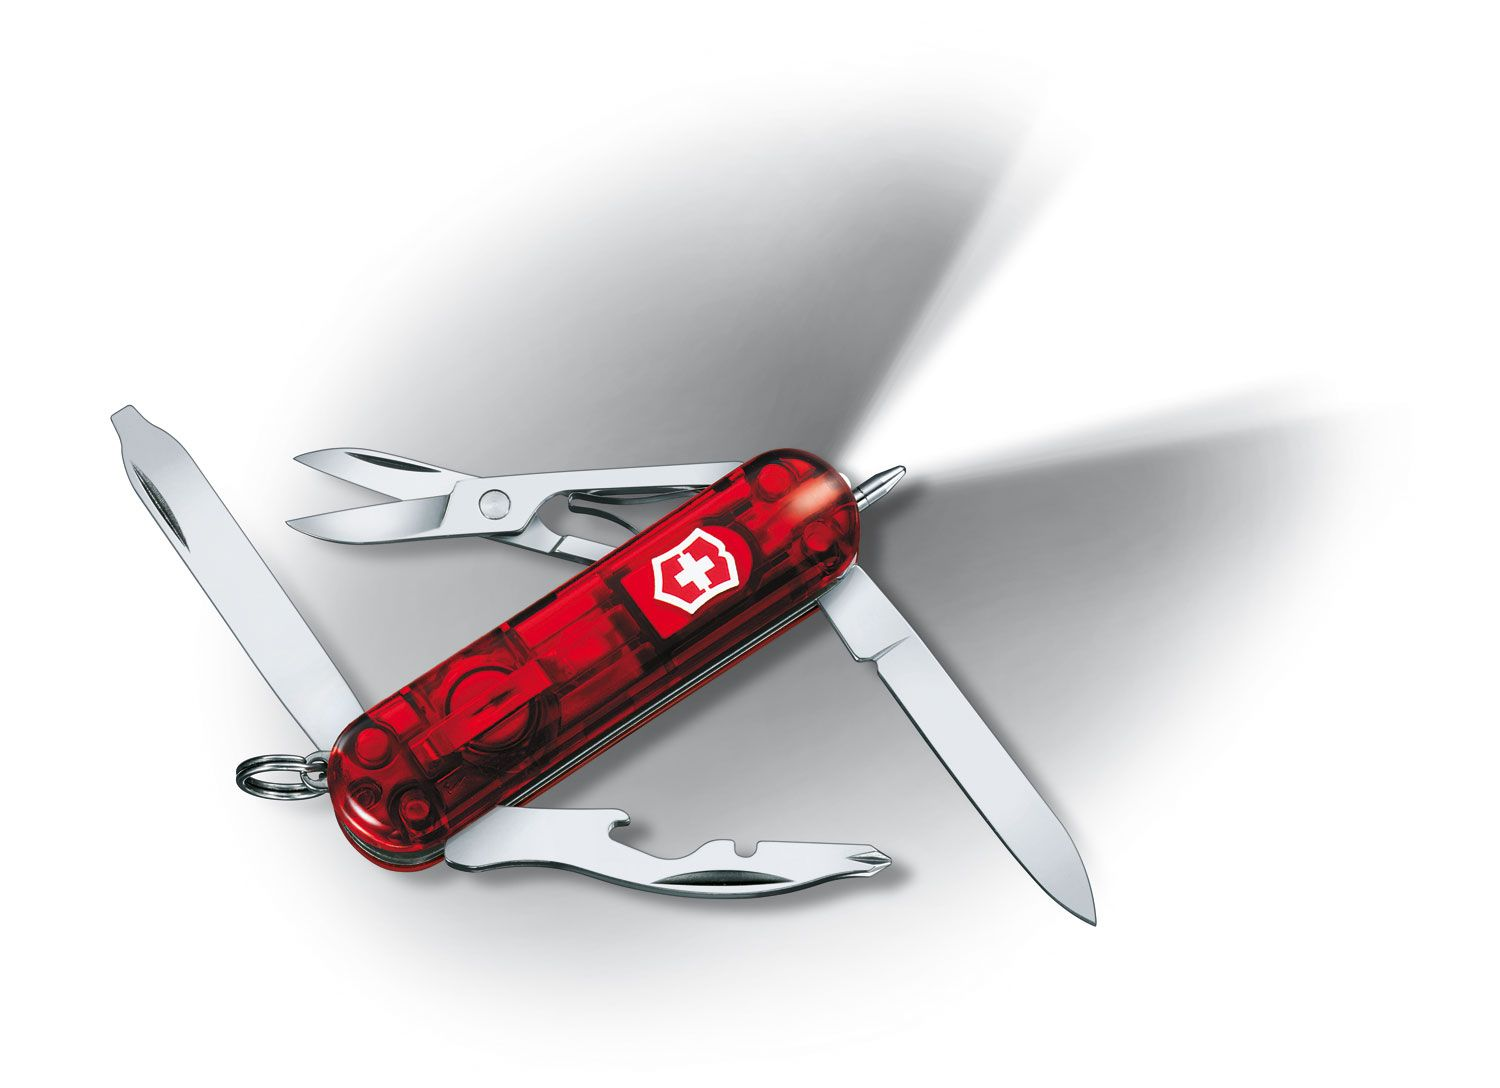 Victorinox Swiss Army Midnite Manager Multi-Tool with LED, Transparent Red, 2.28 inch Closed